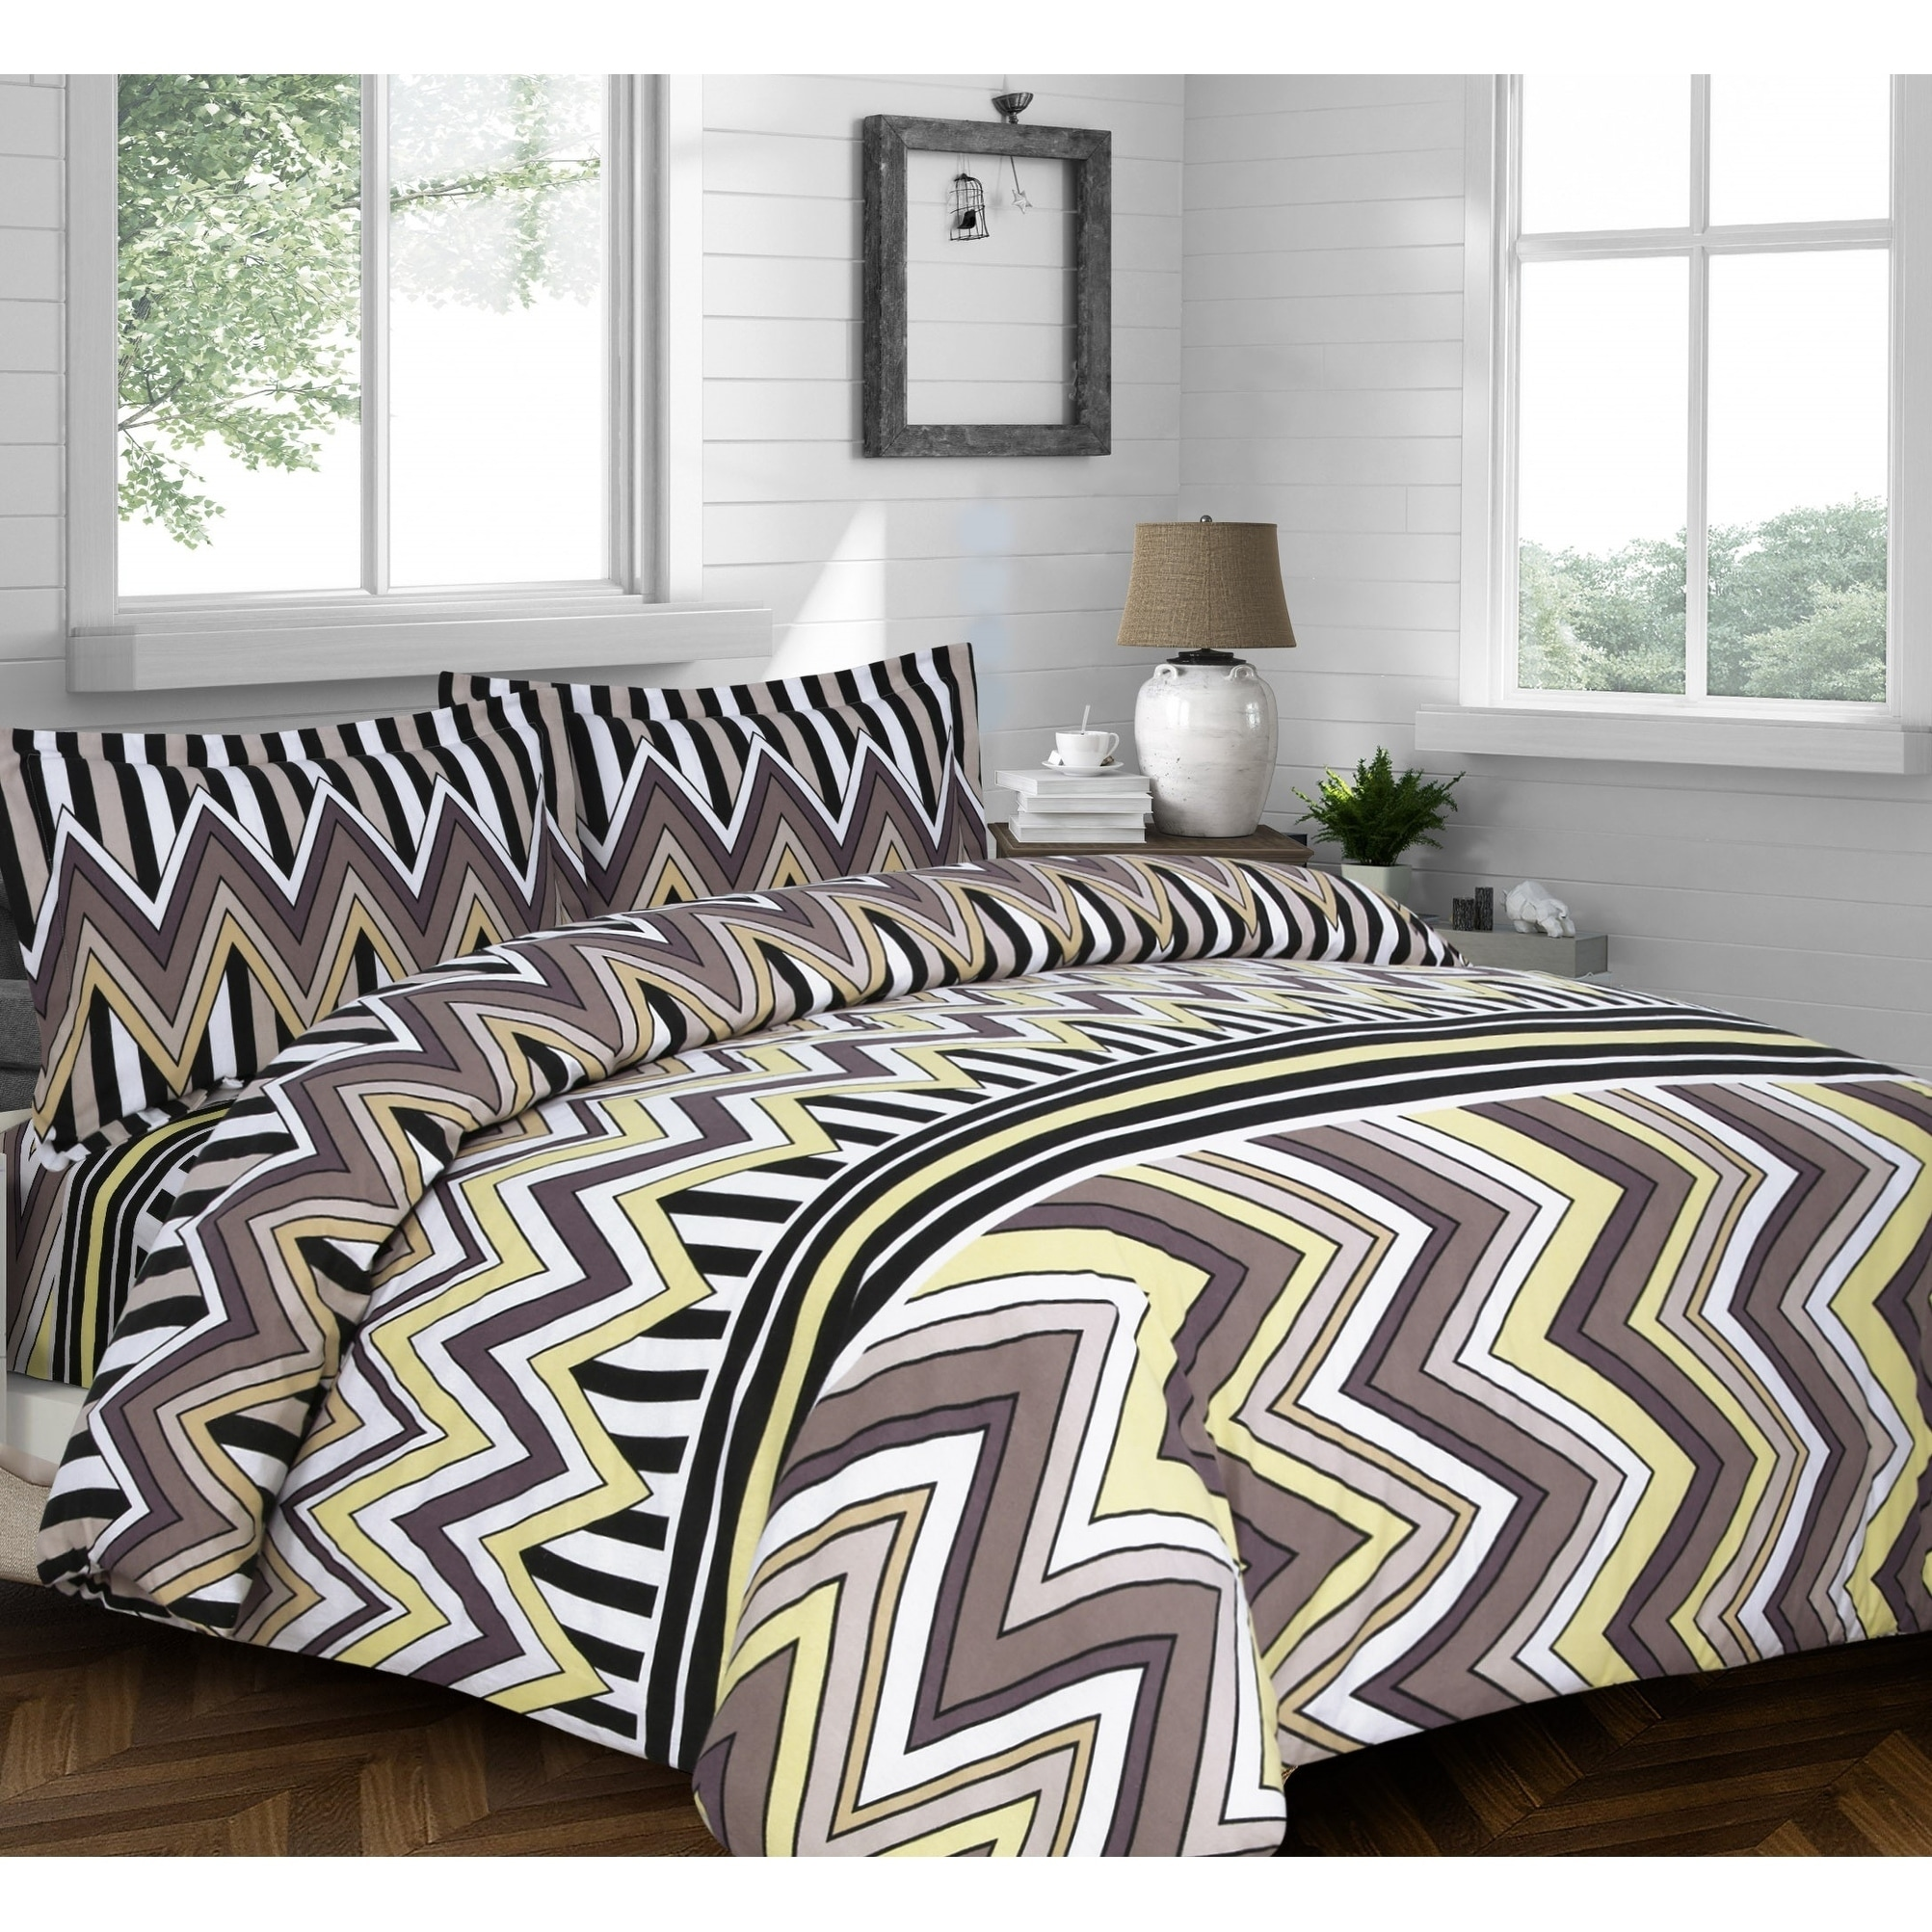 Shop Chevron Stripe Printed Flannel 3 Piece Duvet Cover Set On